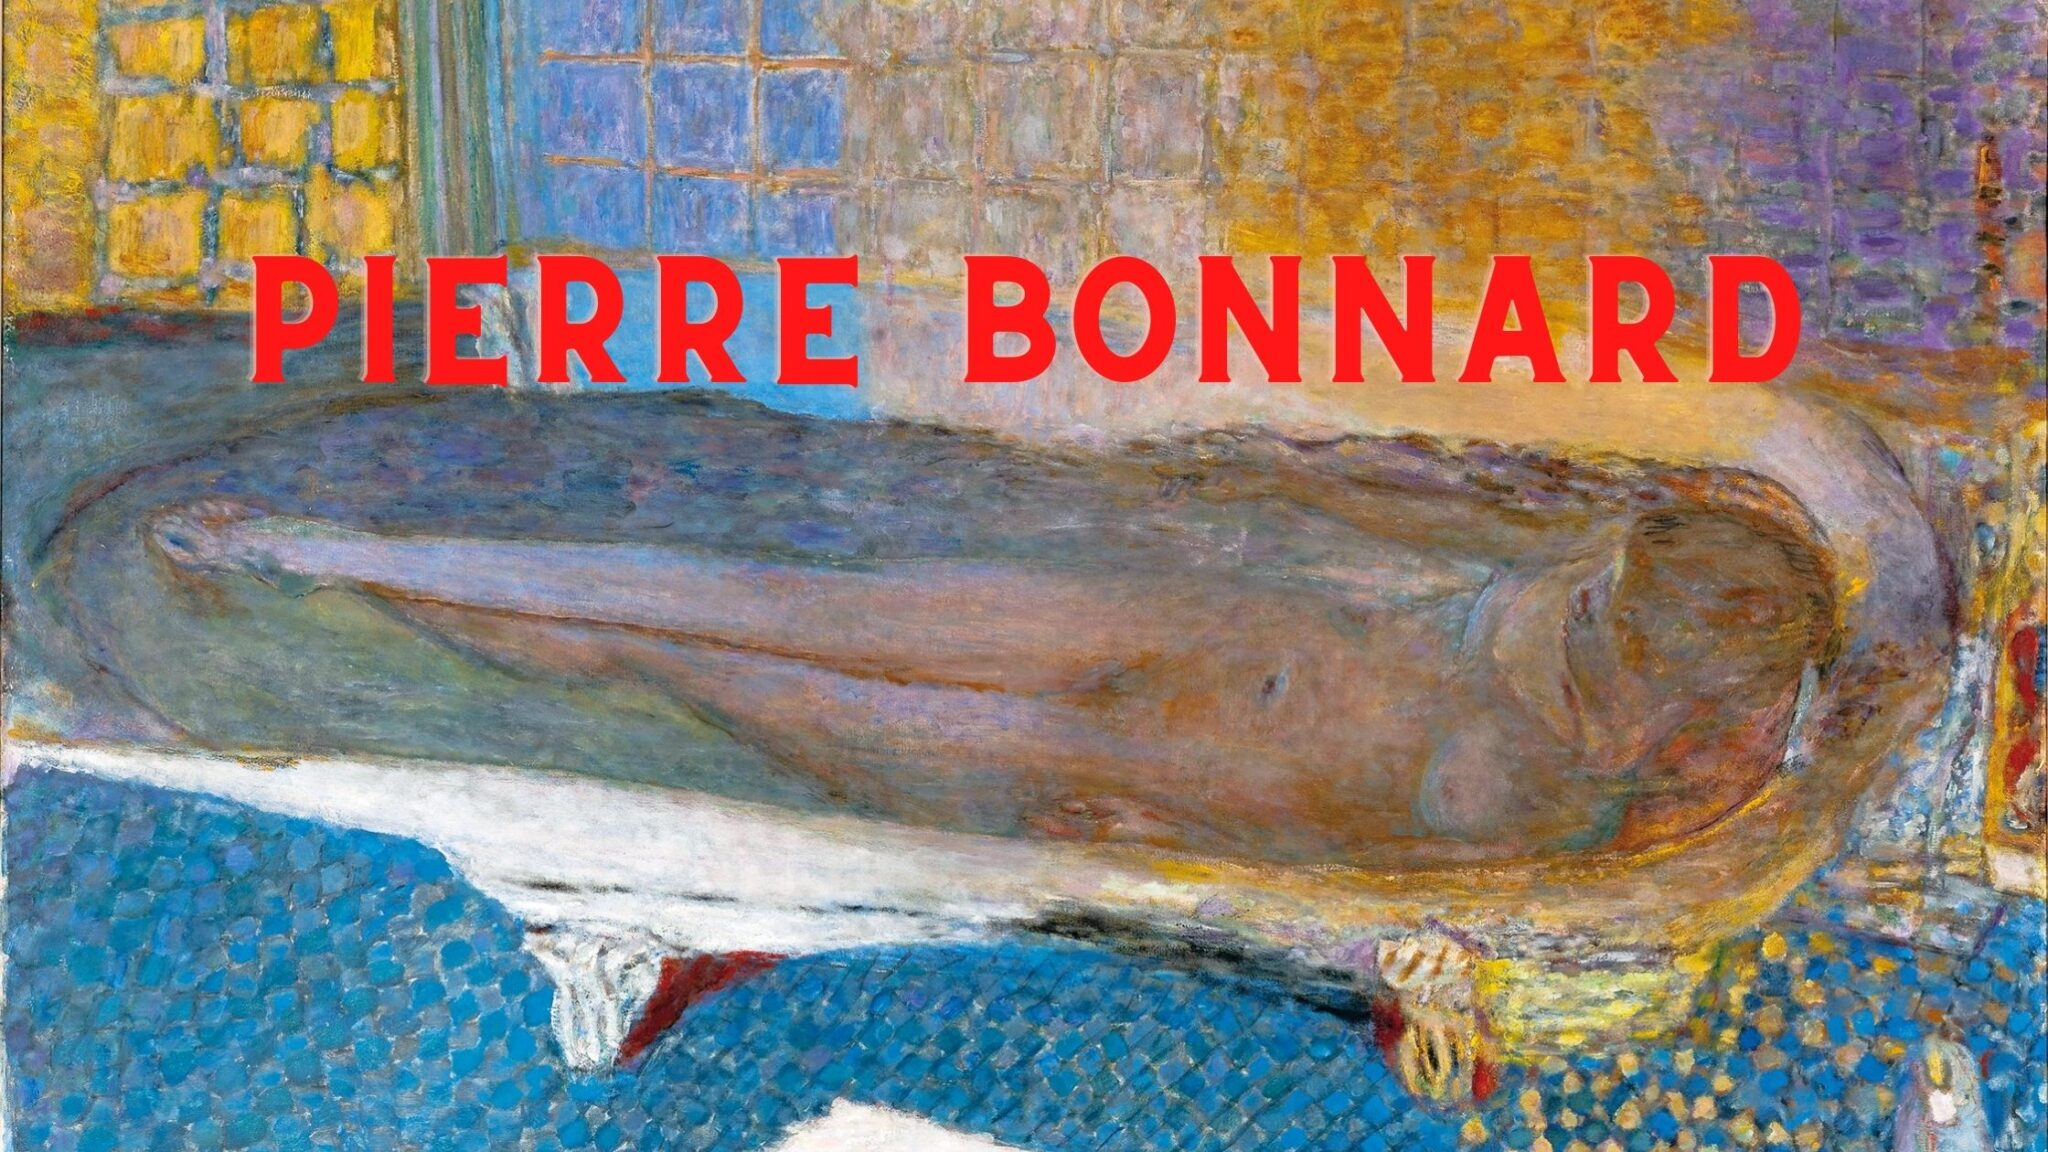 Pierre Bonnard Image Painting Photo Art Print